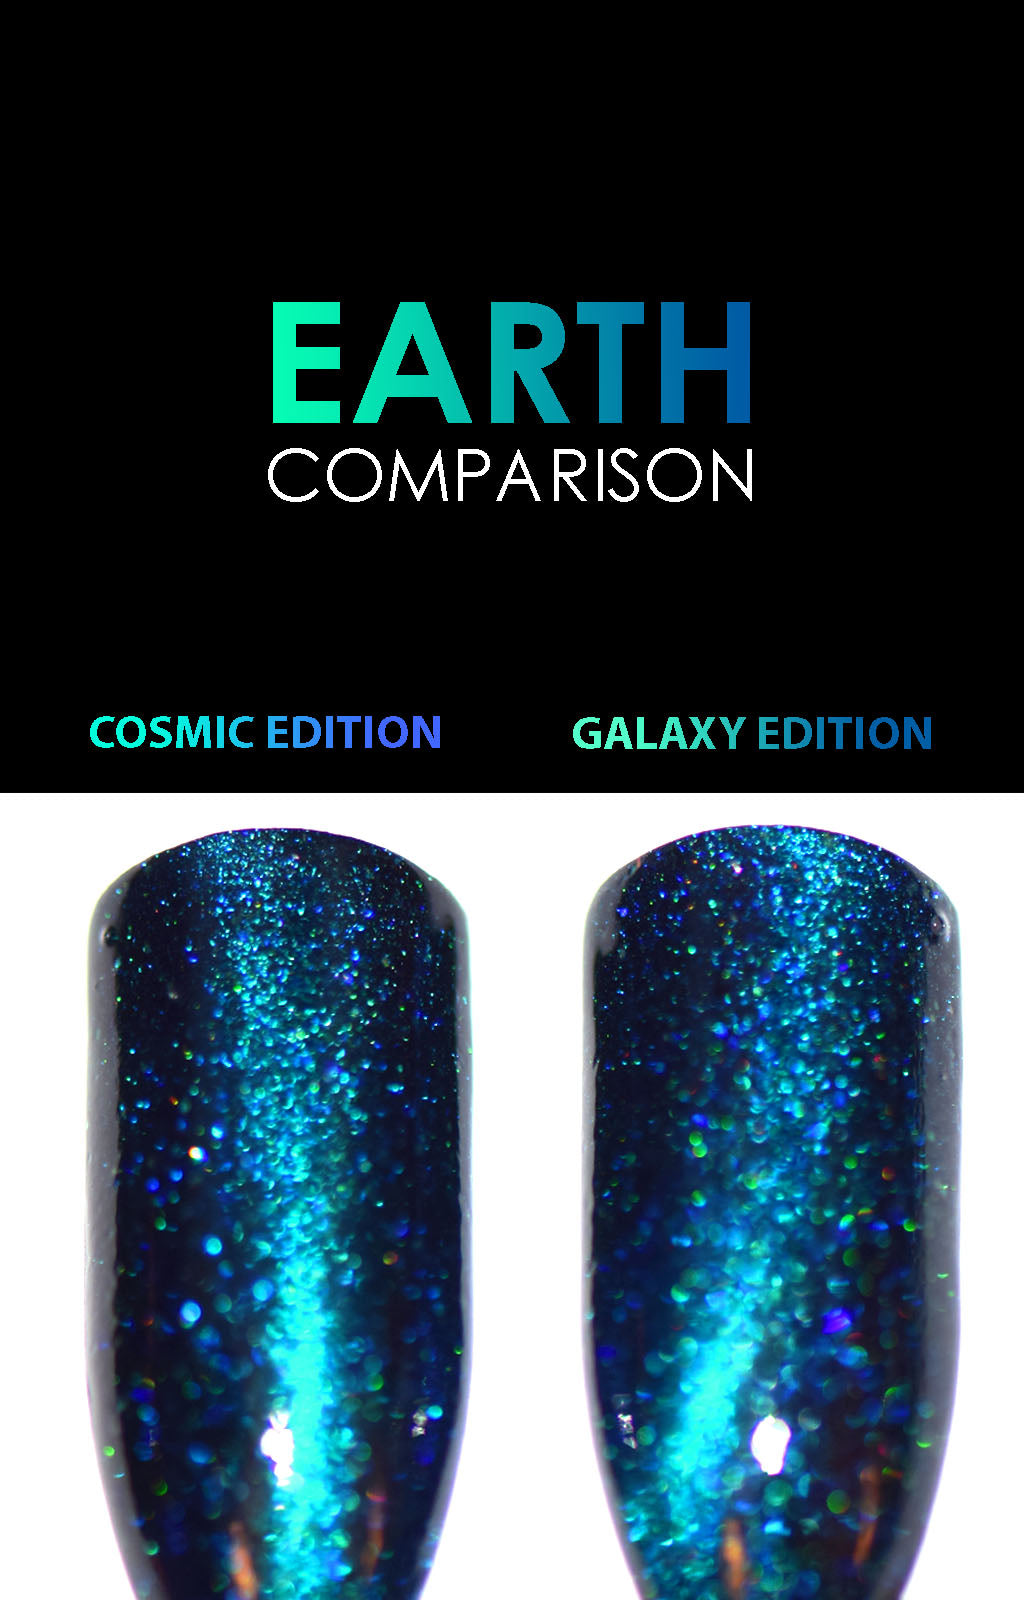 Earth - Cosmic Edition